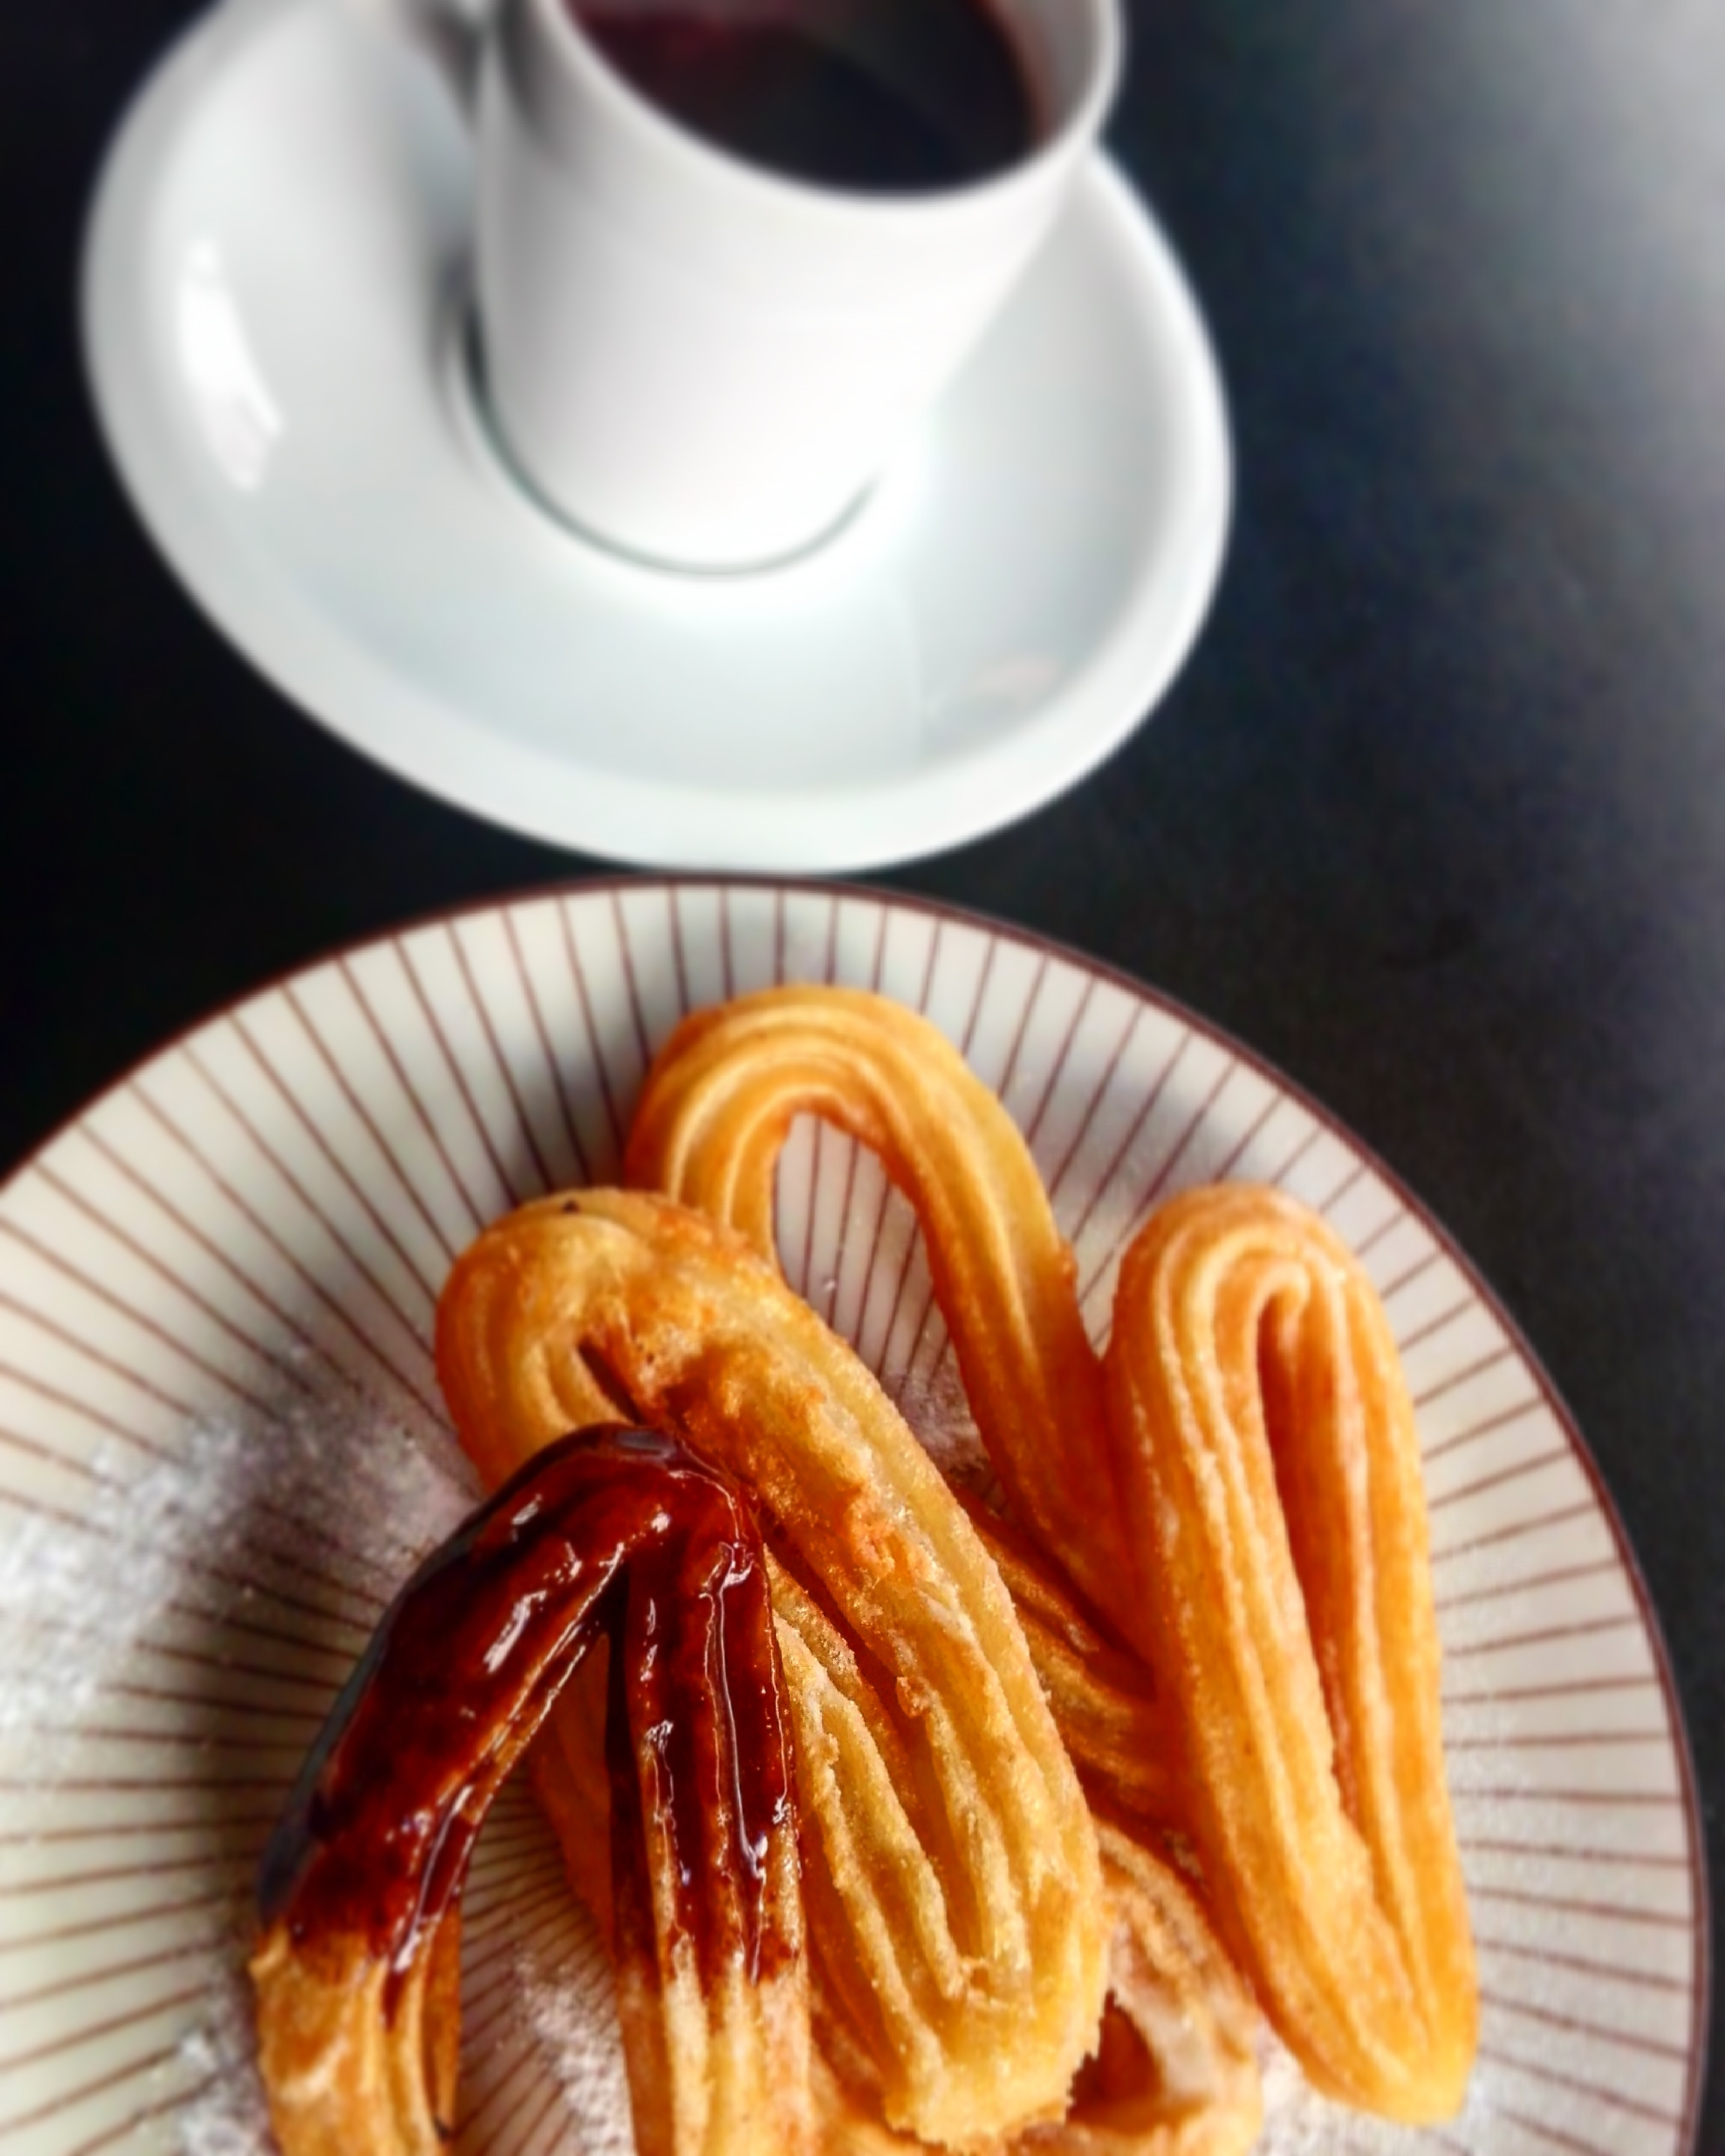 CHURROS AL FORNO